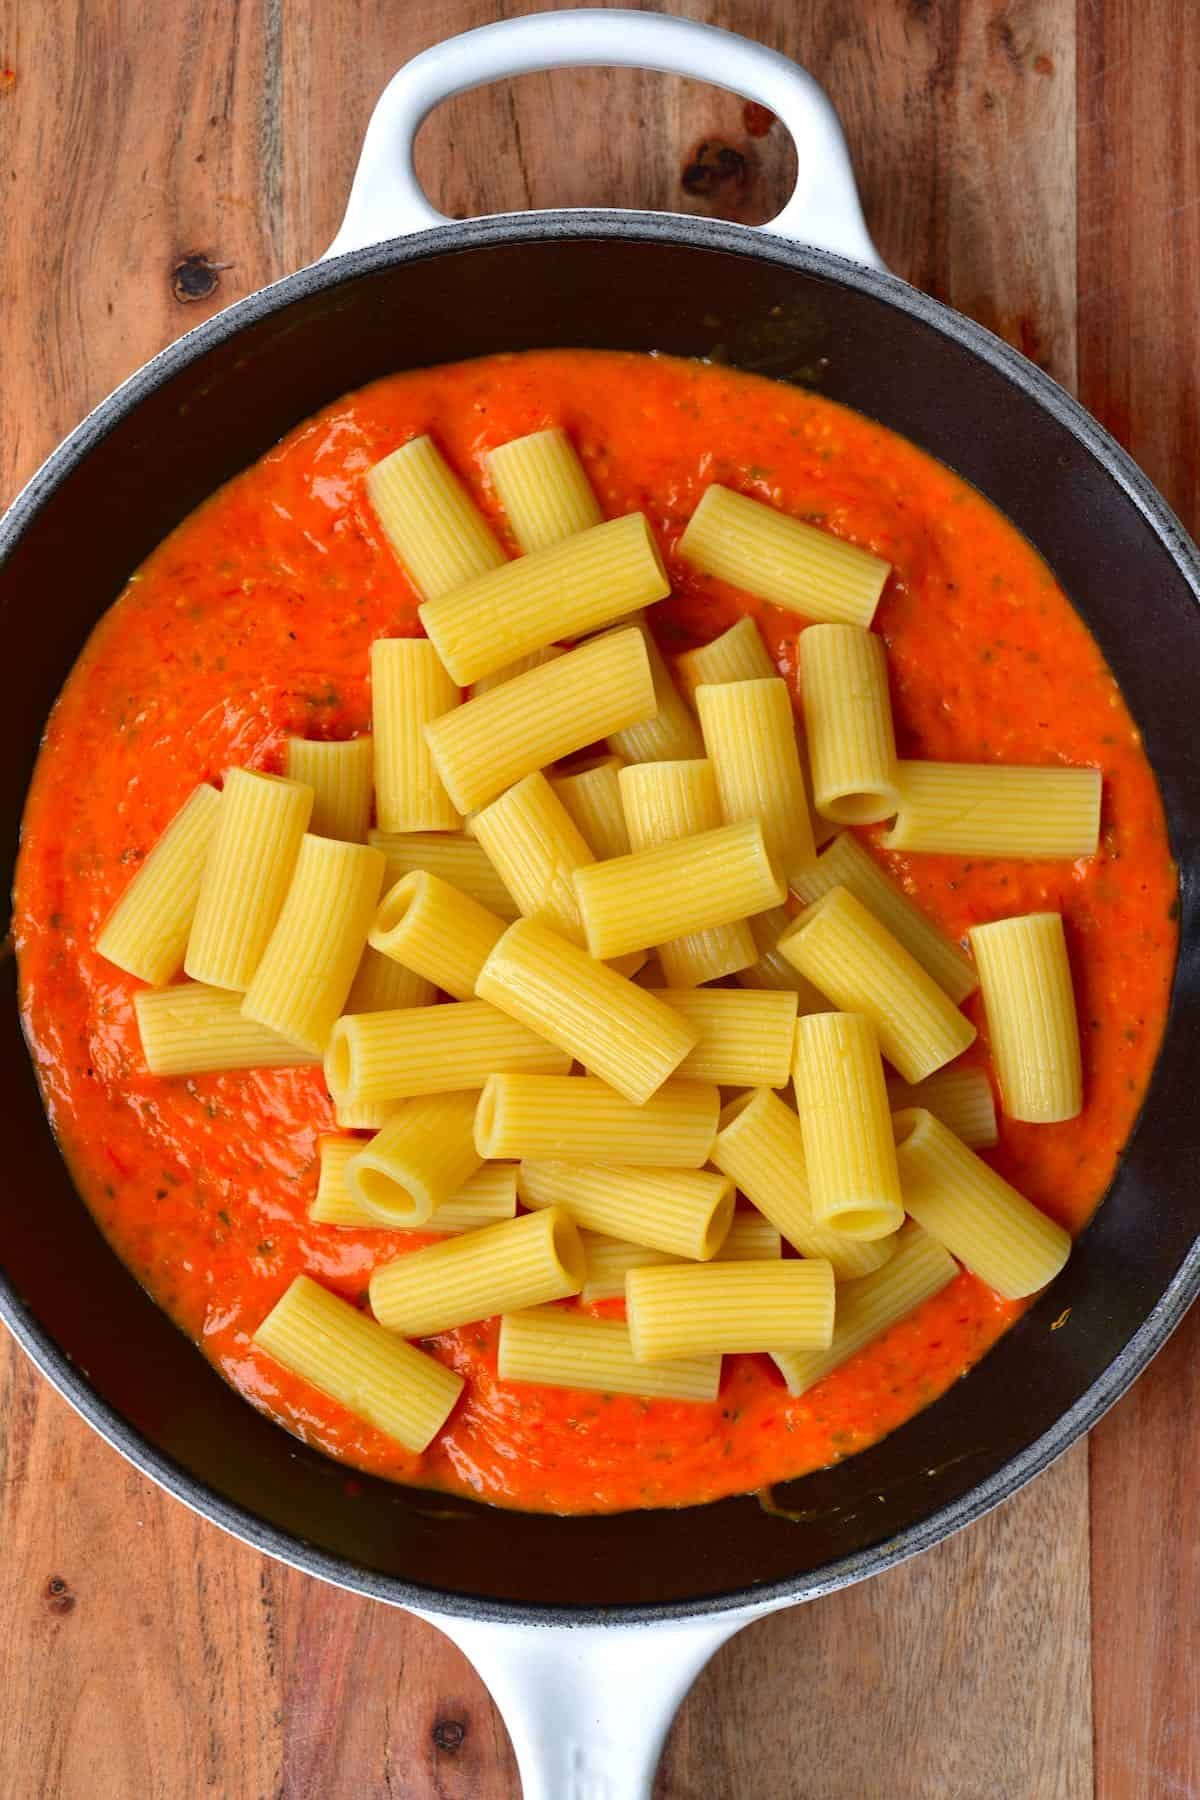 A pan with tomato sauce and some penne pasta